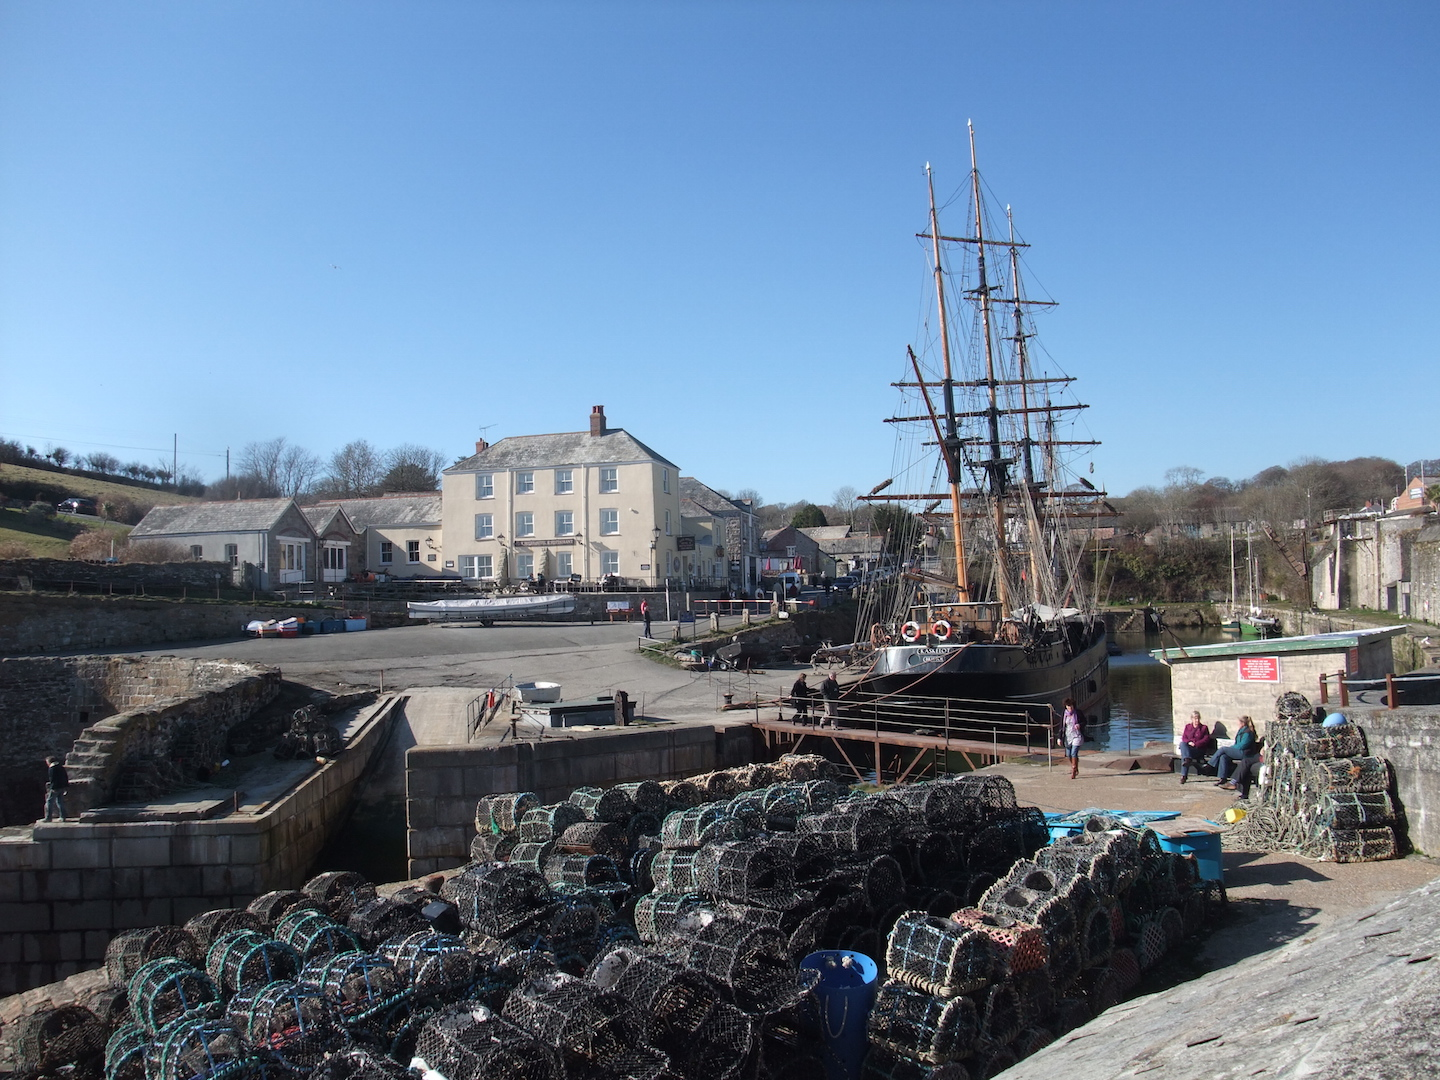 Charlestown Harbour - 45 minute walk